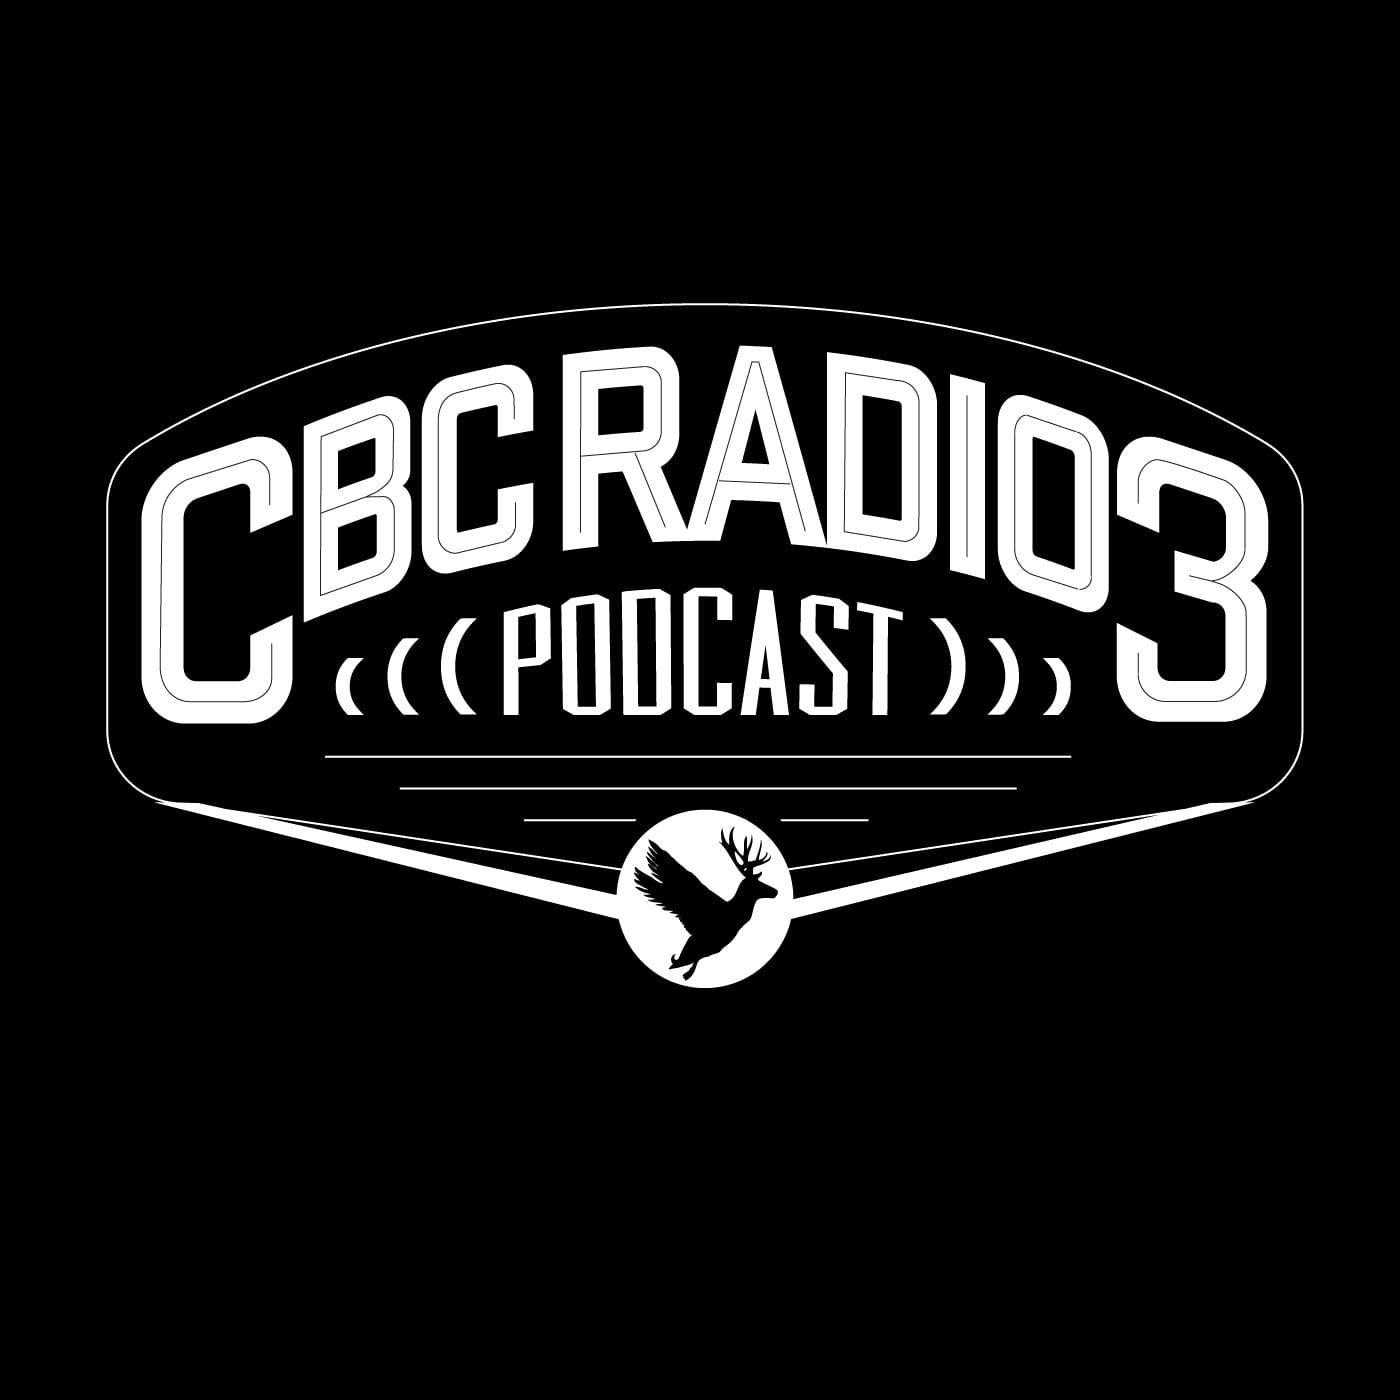 CBC Radio 3 Podcast